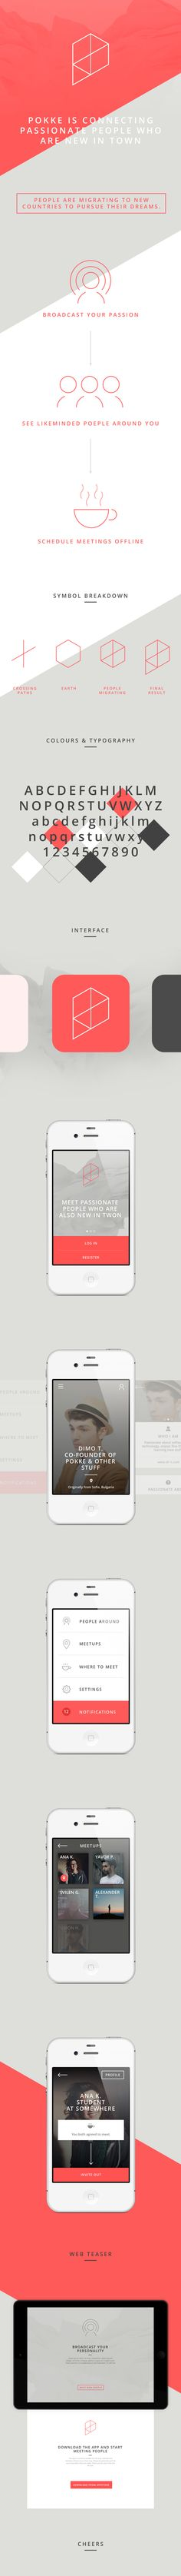 me is connecting passionate people who are new in town. Email Template Design, Email Templates, Mobile Design, Mobile Ui, Ui Ux, User Interface, Ui Design, Behance, Apps